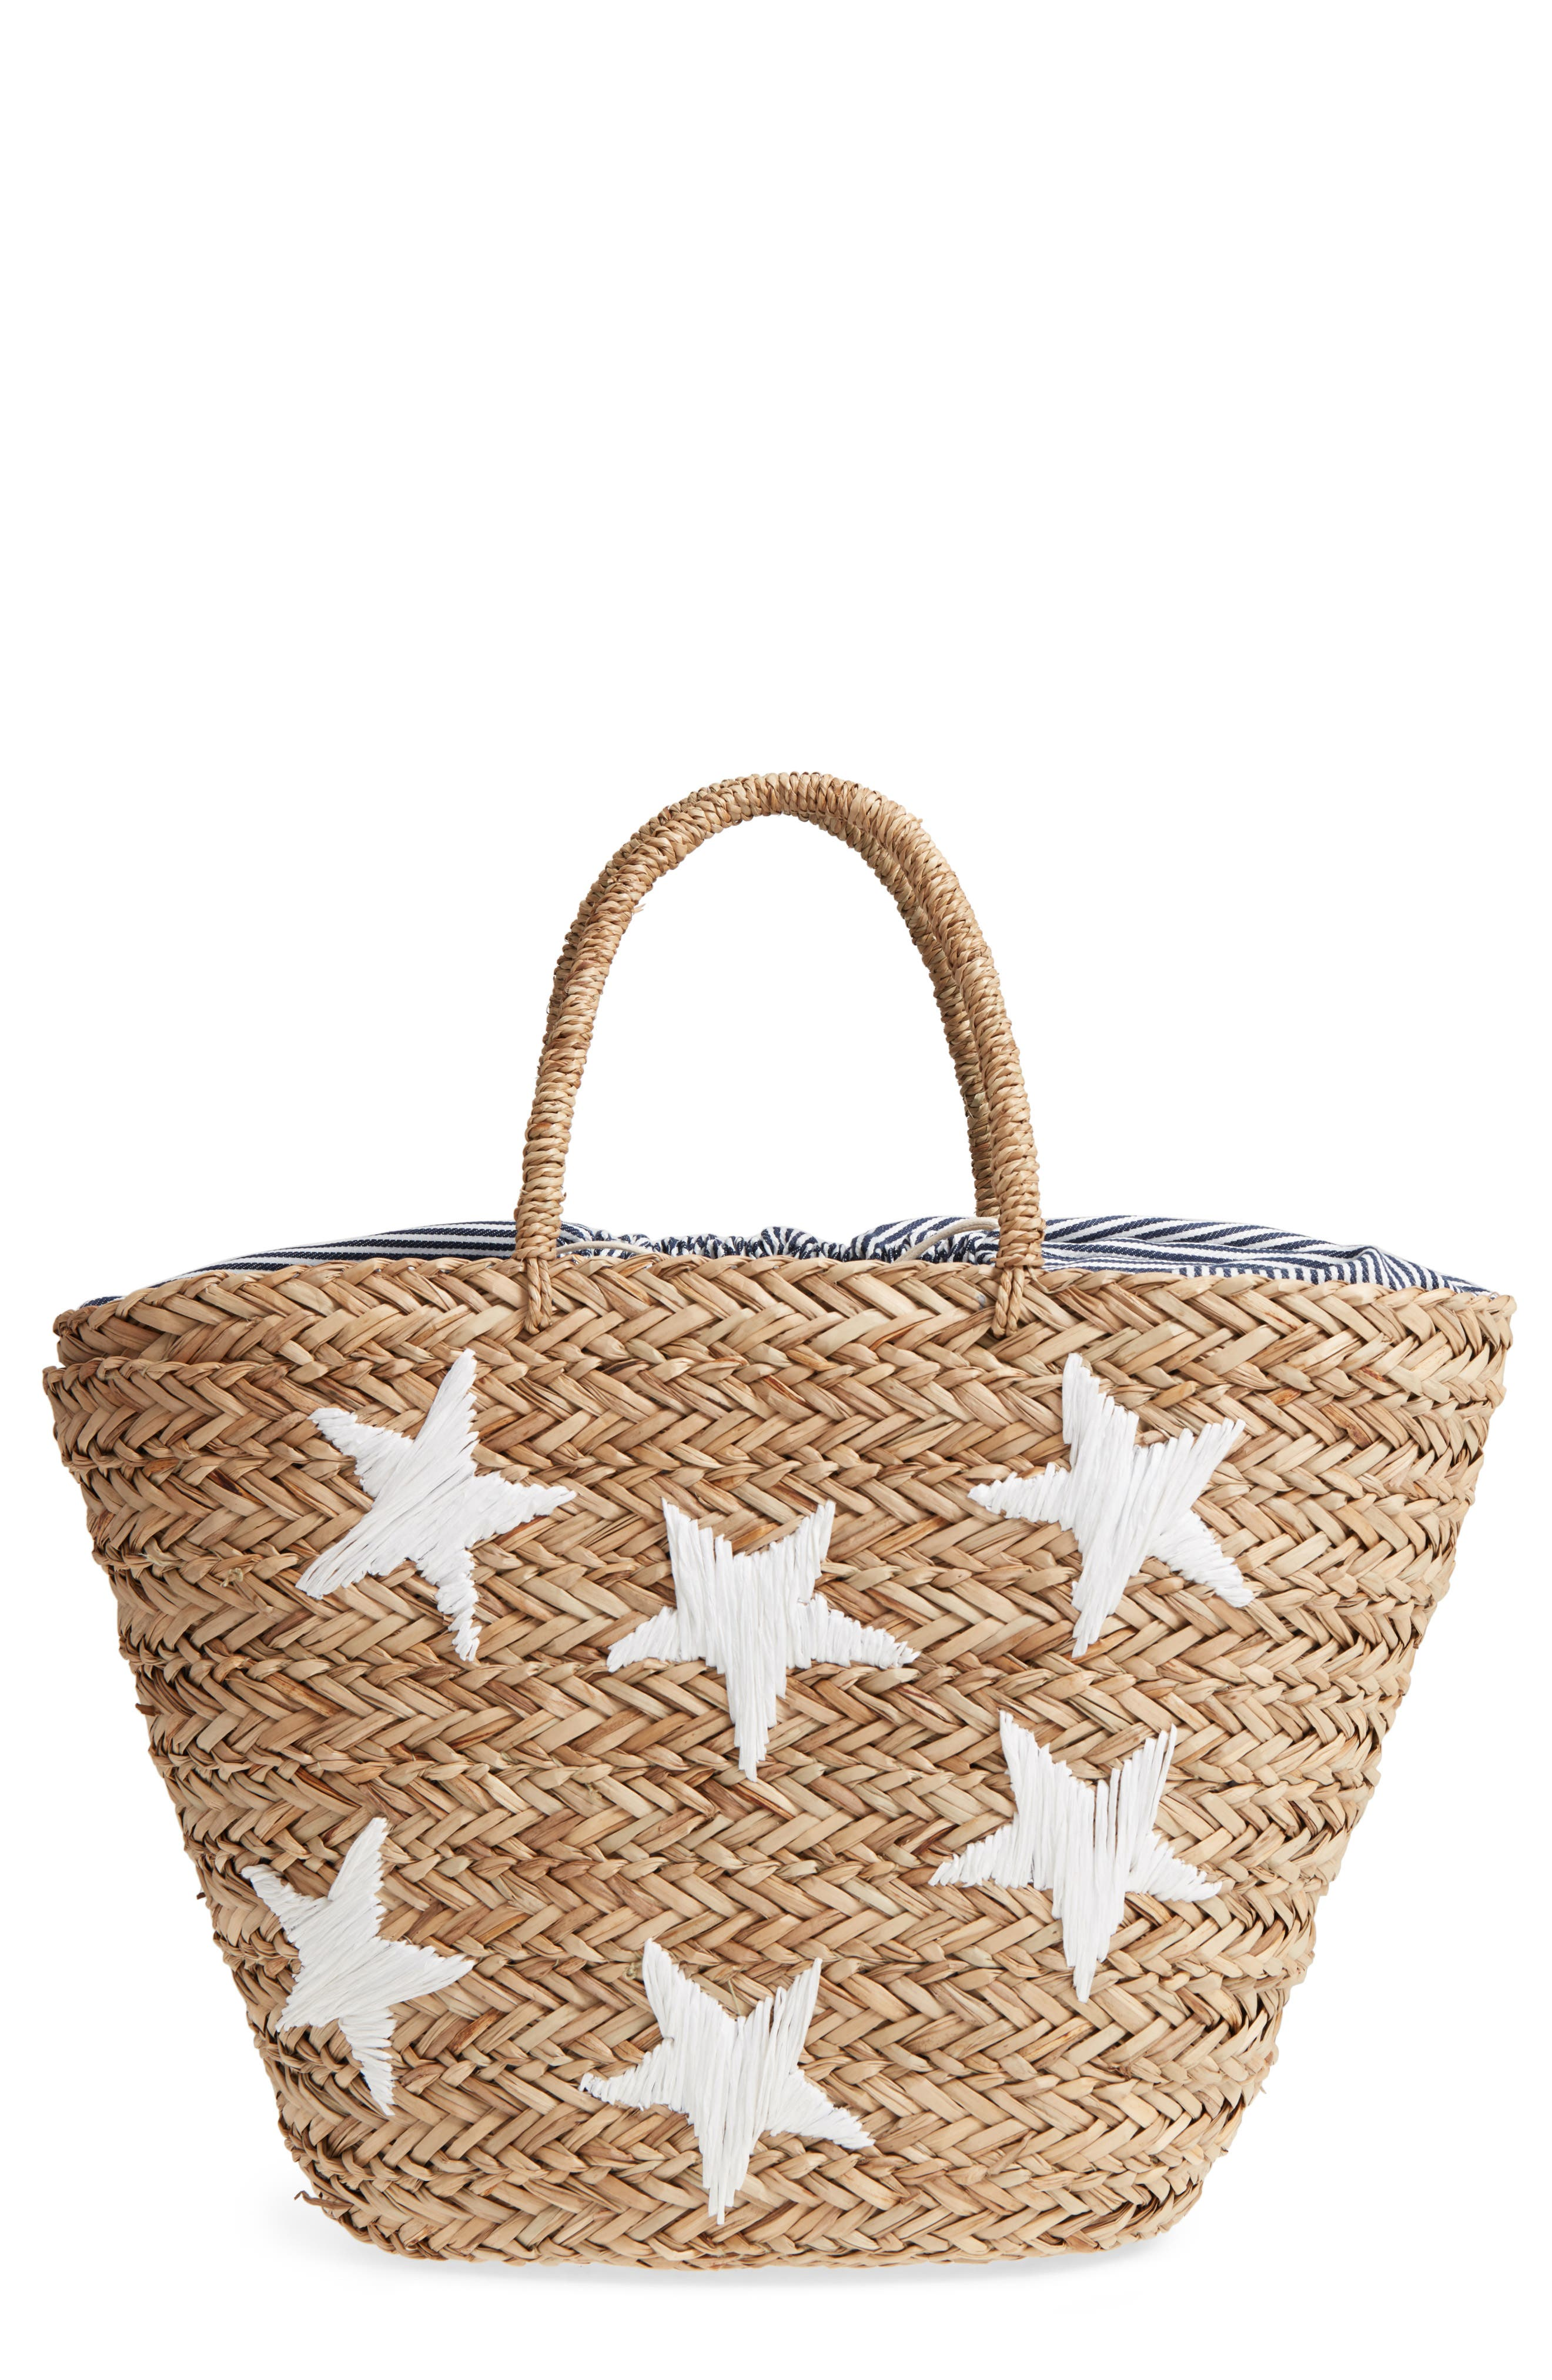 Alternate Image 1 Selected - Nordstrom Stargaze Woven Sea Grass Tote